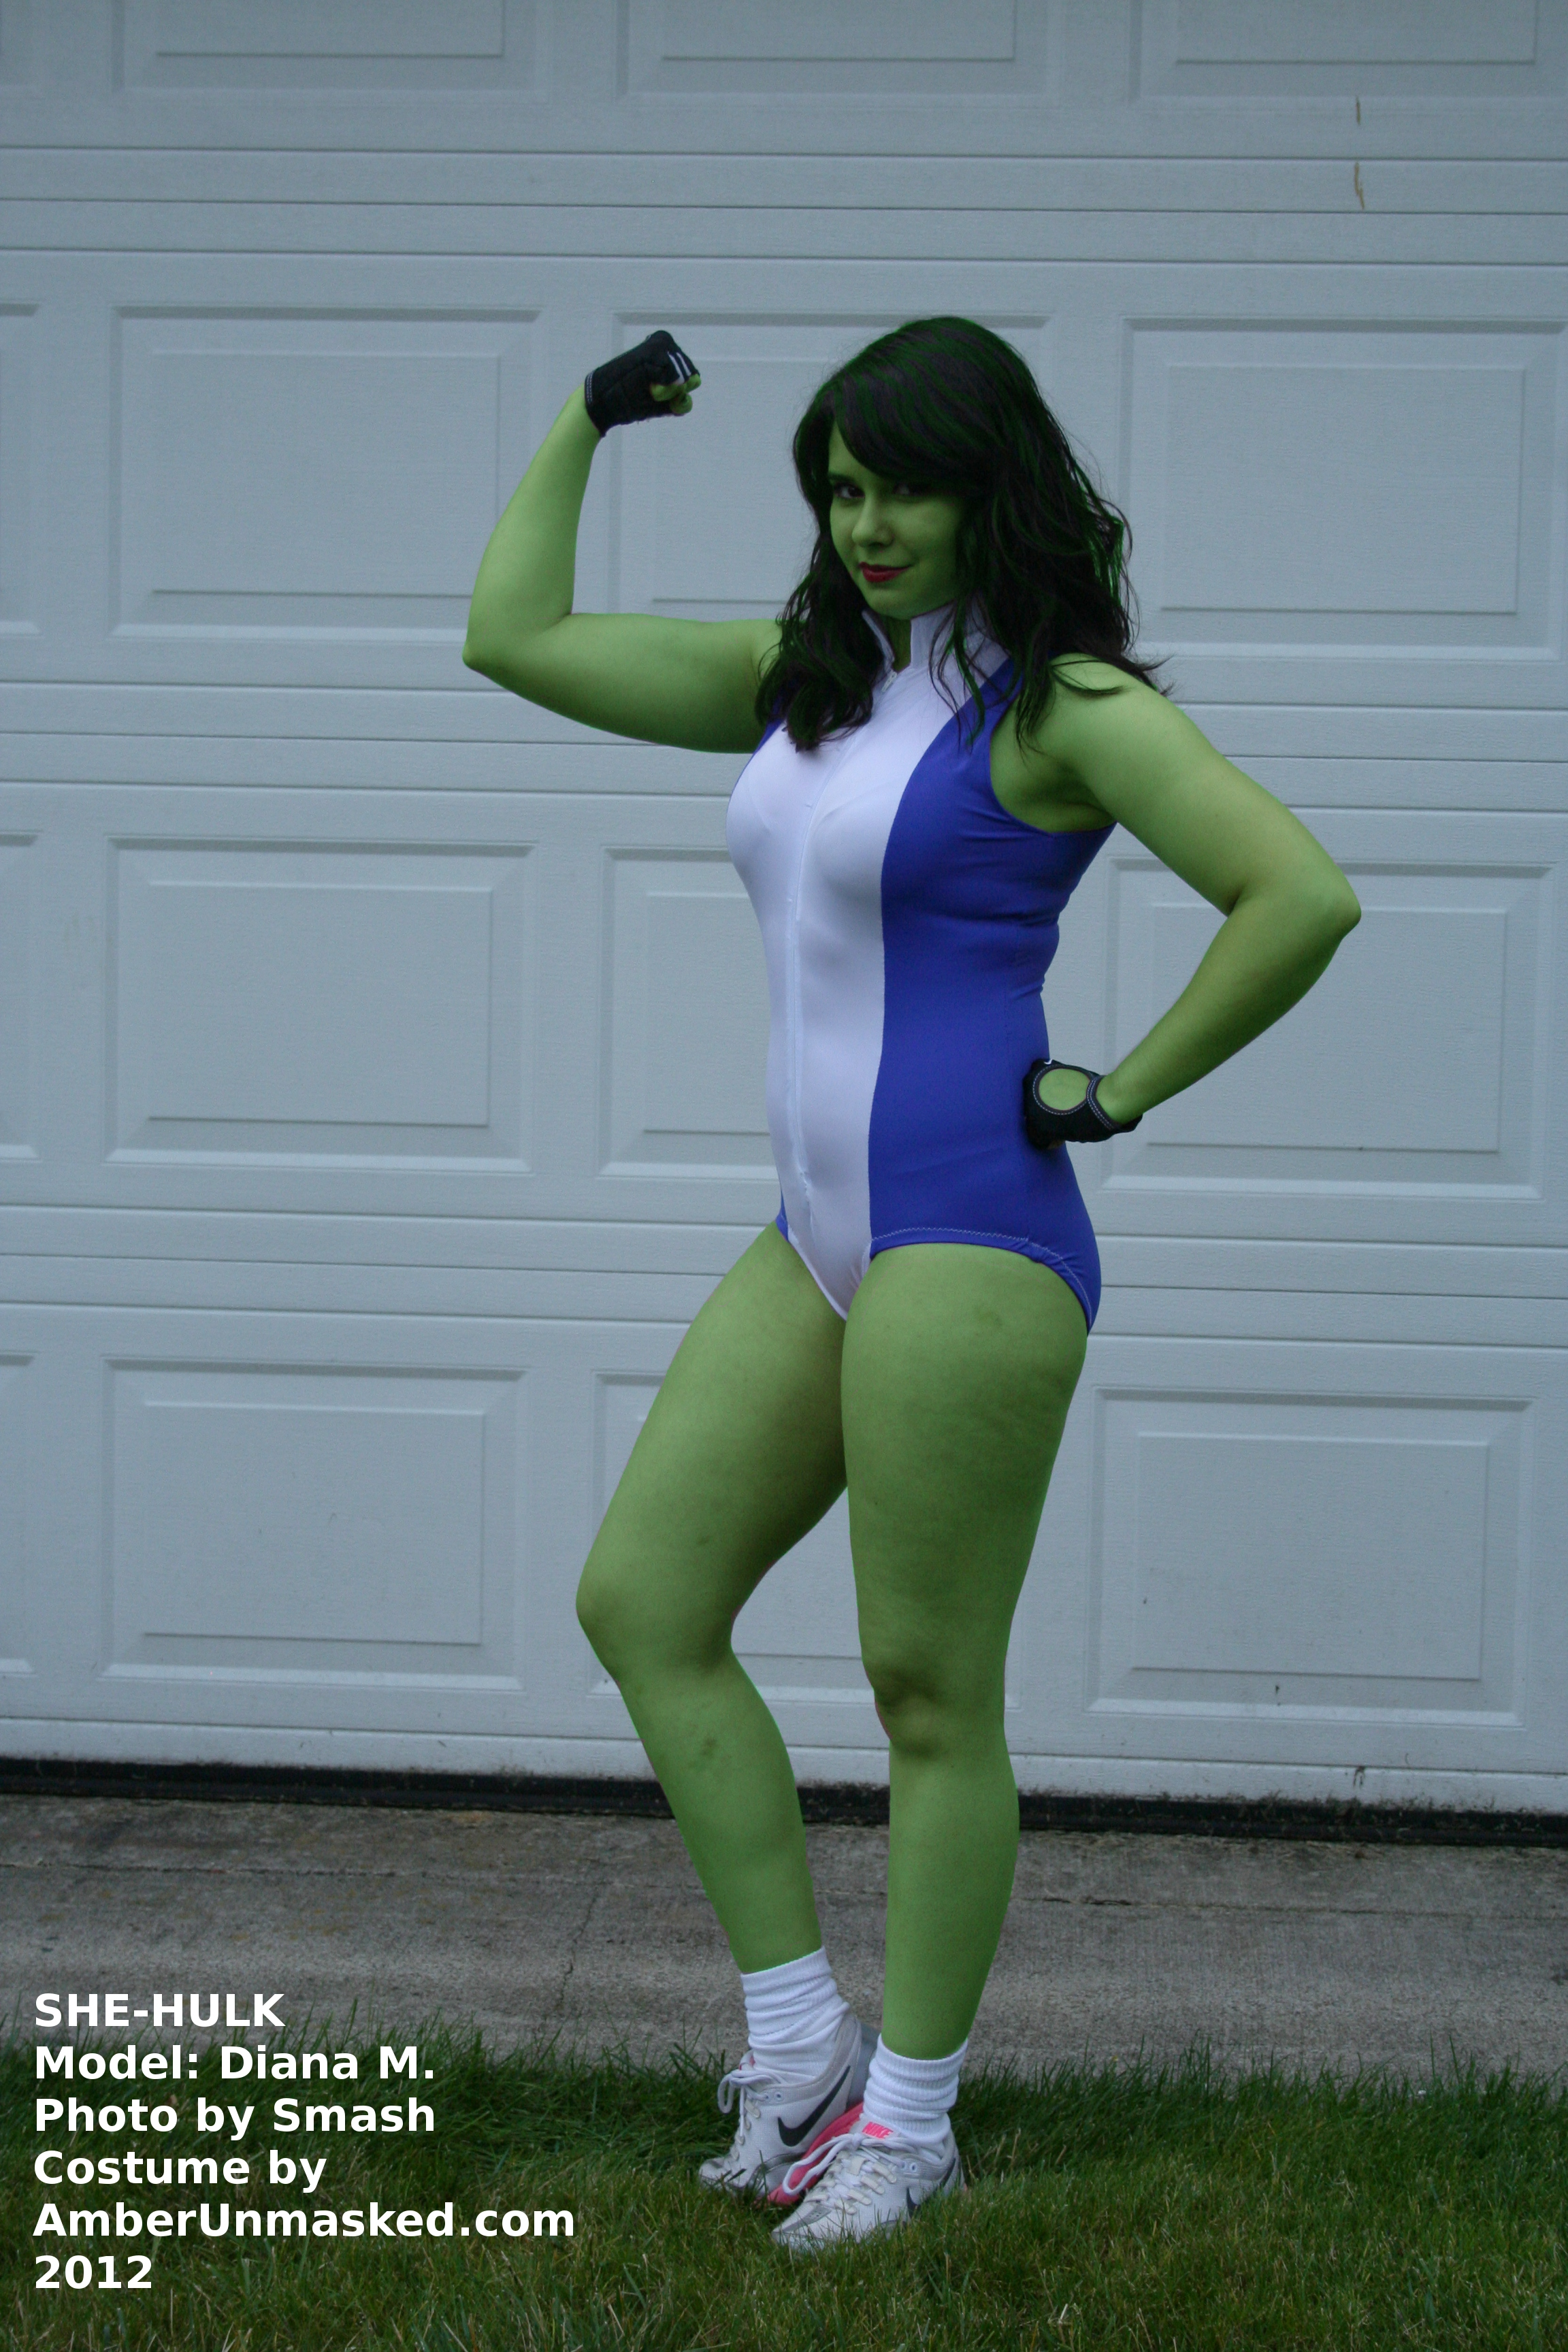 SHE-HULK COSPLAY. COSTUME BY AMBER LOVE. MODELED BY DIANA. & Tutorial: SHE-HULK costume (Marvel) u2013 Amber Unmasked